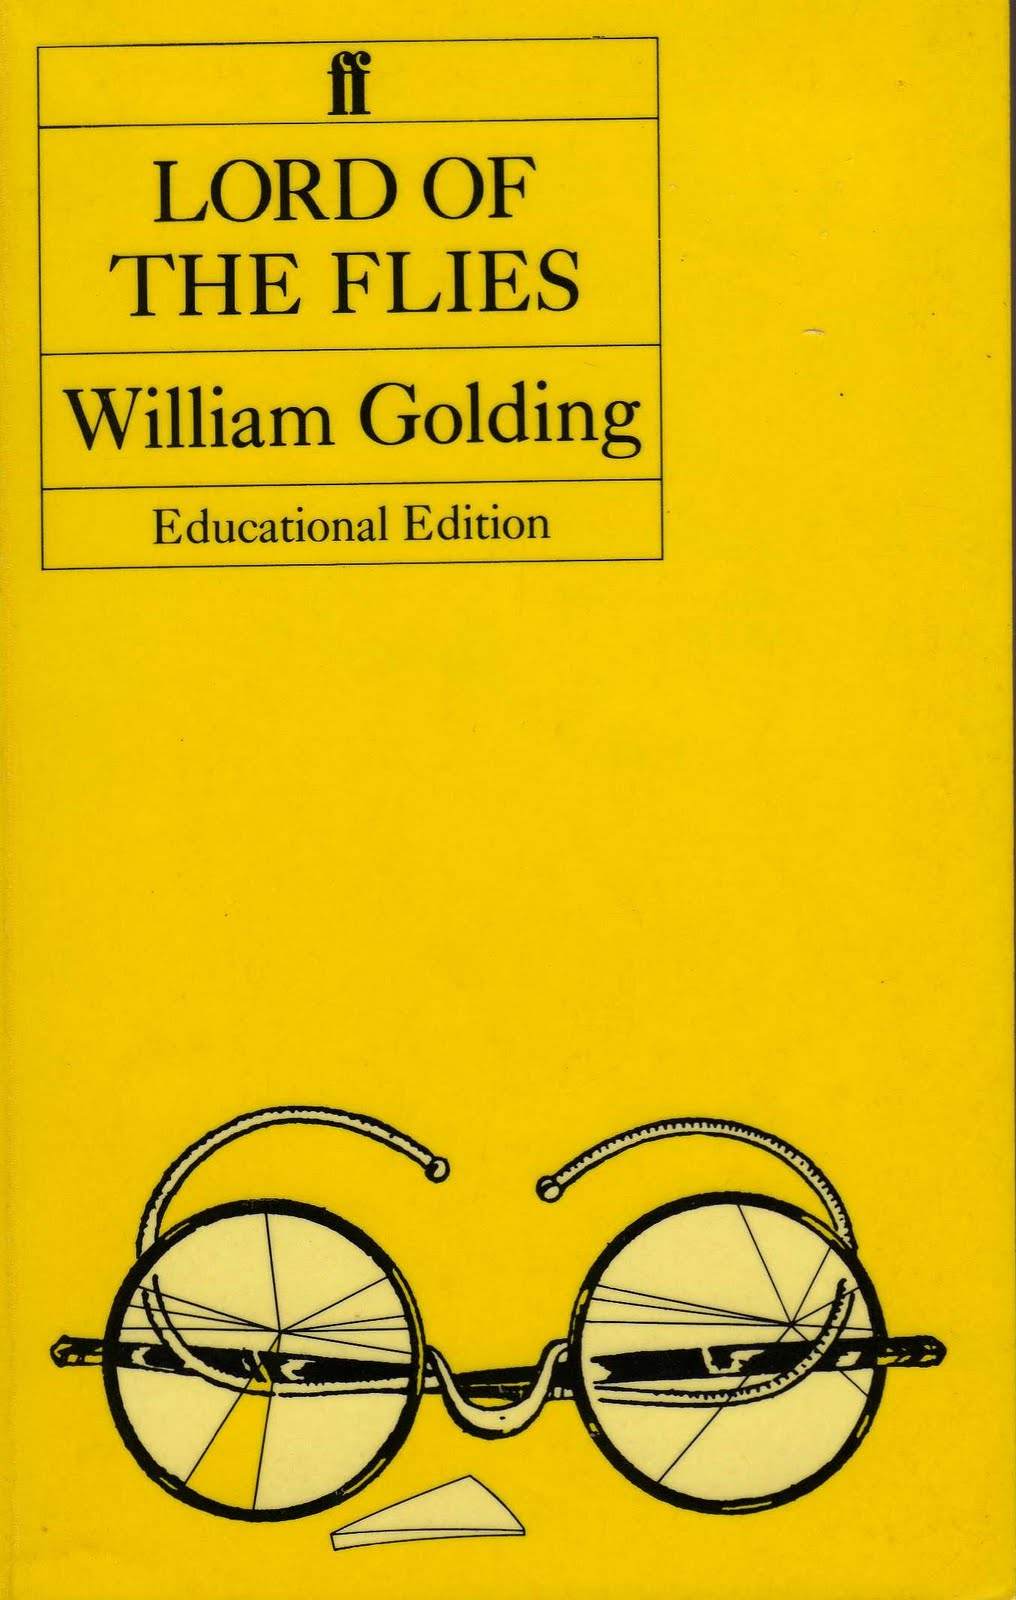 an analysis of the conchs symbol in the lord of the flies by william golding In the novel lord of the flies, william golding deals with this same evil which exists in all of his characters with his the climax is reached shortly after the shattering of the conch and piggy's death, when the boys attempt to kill ralf many are connotative and therefore create a story abundant in meaning and symbolism.